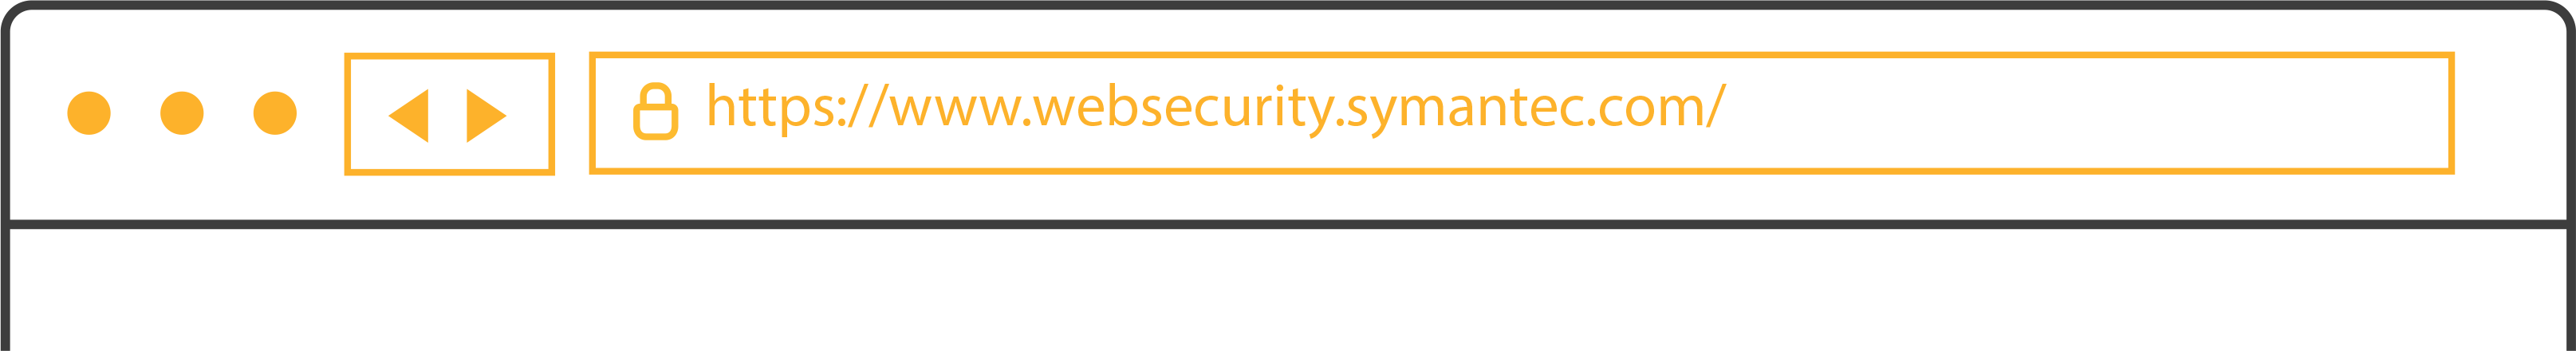 What Is Ssl Tls And Https Digicert Symantec